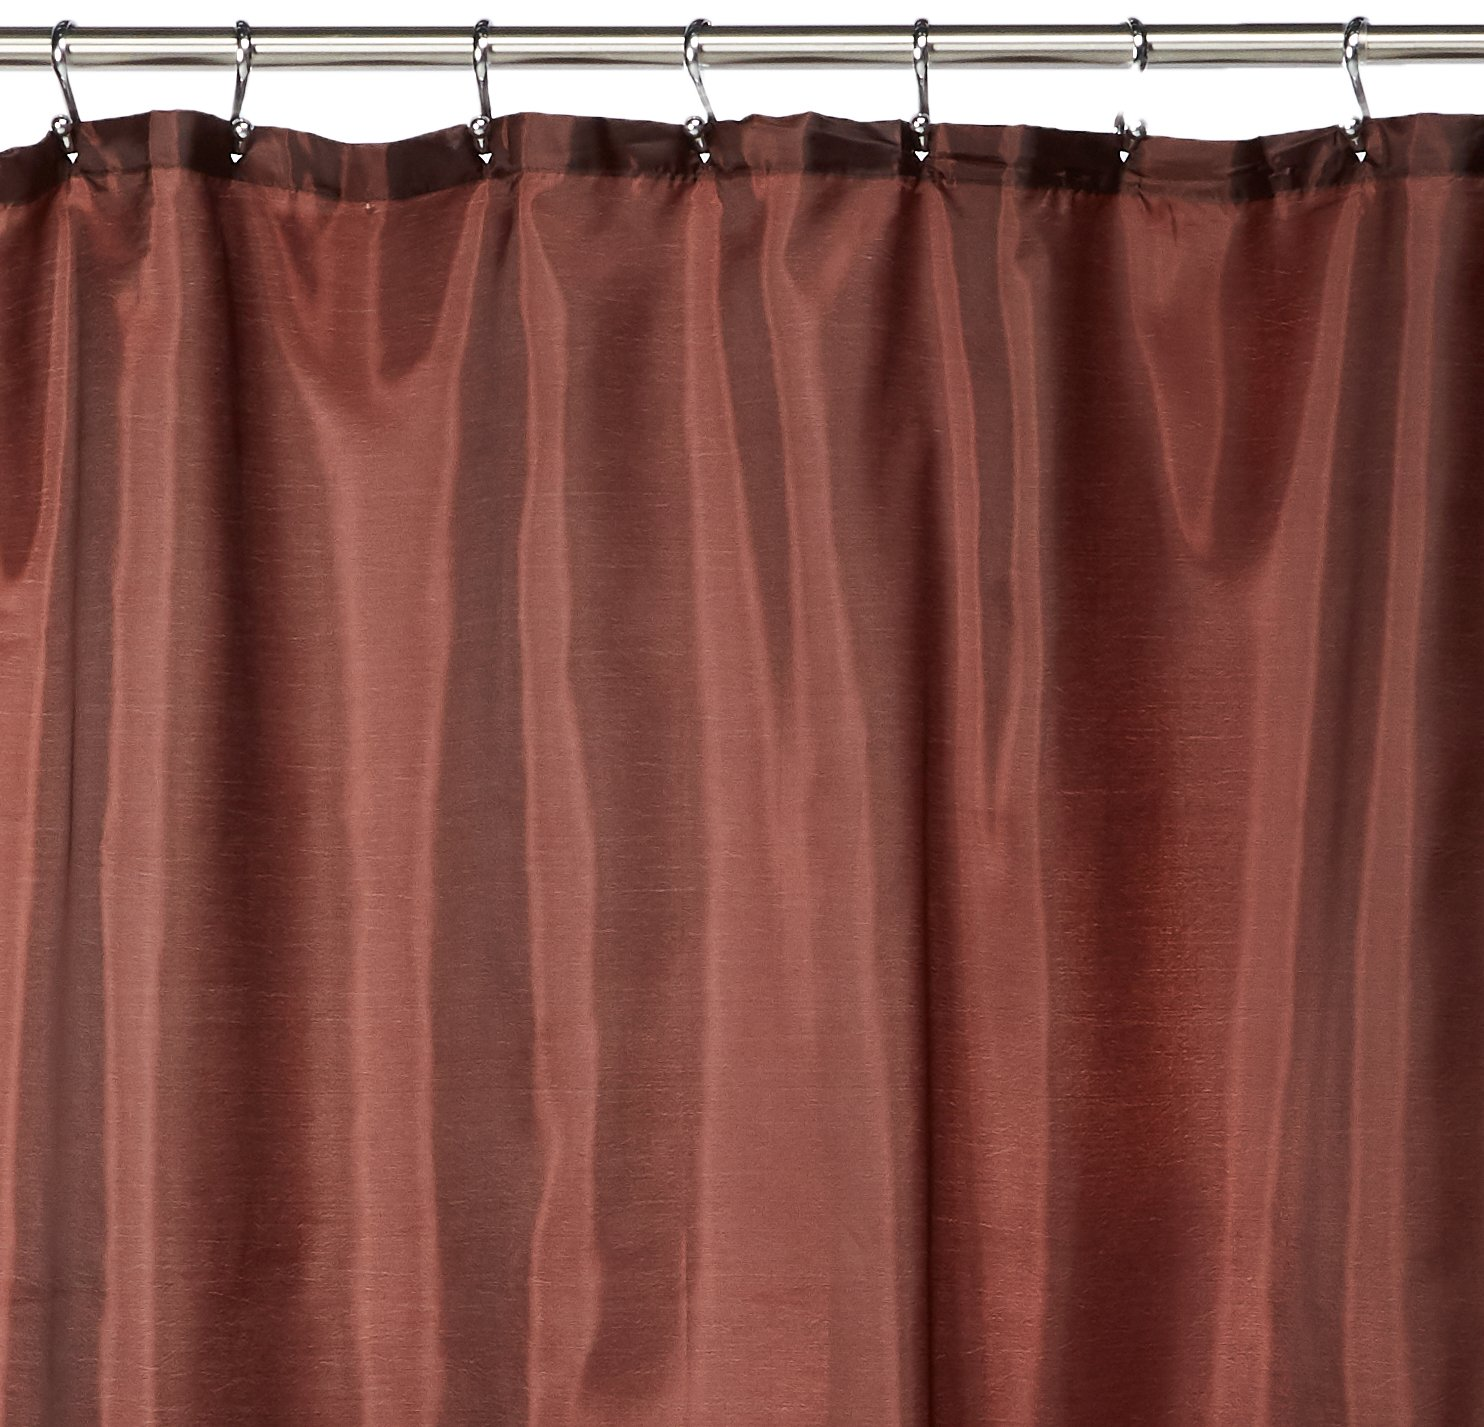 Carnation Home Fashions Fabric Shower Curtain Liner, 70-Inch by 72-Inch, Brown Inc. SC-FAB/13